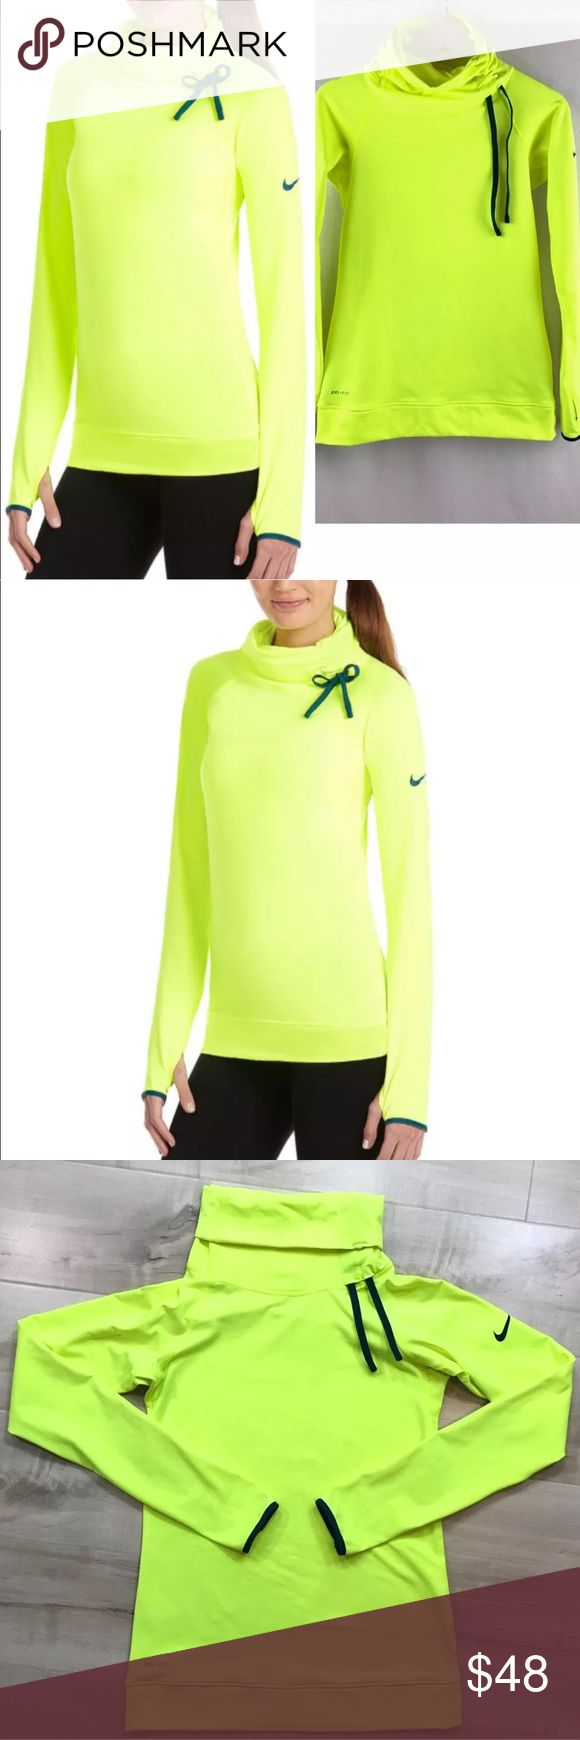 "Nike Pro Dri-Fit Hyperwarm Pullover Neon * Nike Pro   * Women's Dri-Fit   * Hyperwarm   * Long Sleeve Pullover   * Neon Yellow   * 88% polyester/12% spandex  *Excellent Condition; Like new  * Size Small - Approximately 15"" across at the underarms, and 24"" long Nike Tops Sweatshirts & Hoodies"